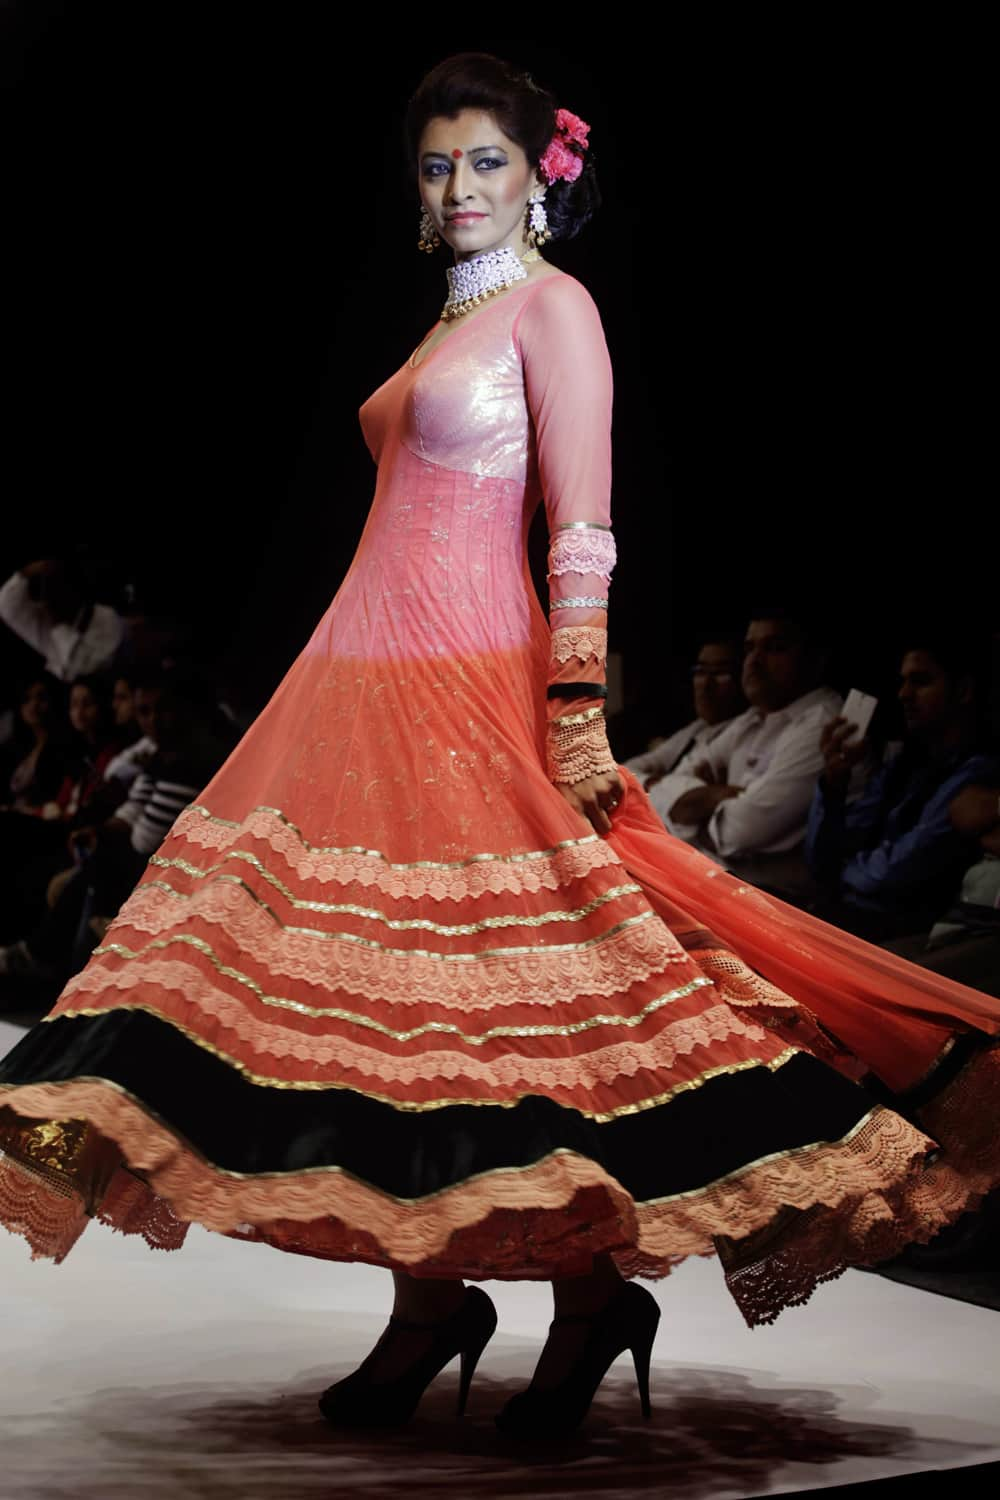 A model displays a creation by designer Sumit Dasgupta during the India Jewellery and Fashion Week (IJFW) in Ahmadabad.